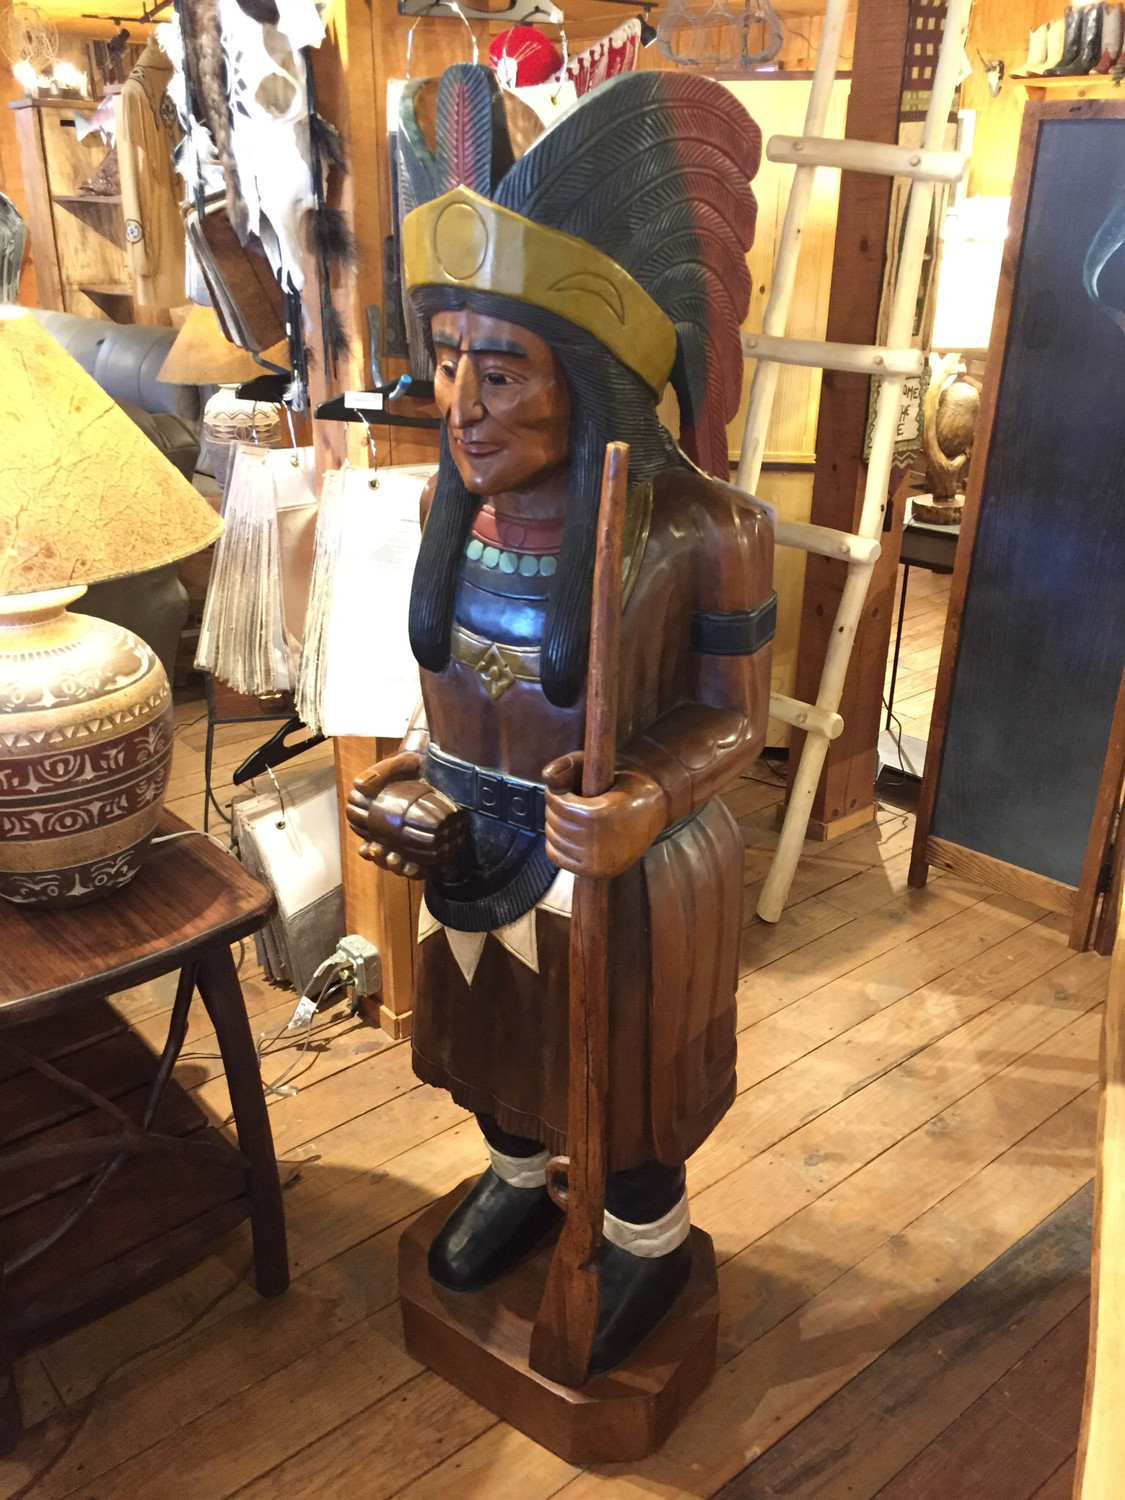 Large Cigar Indian